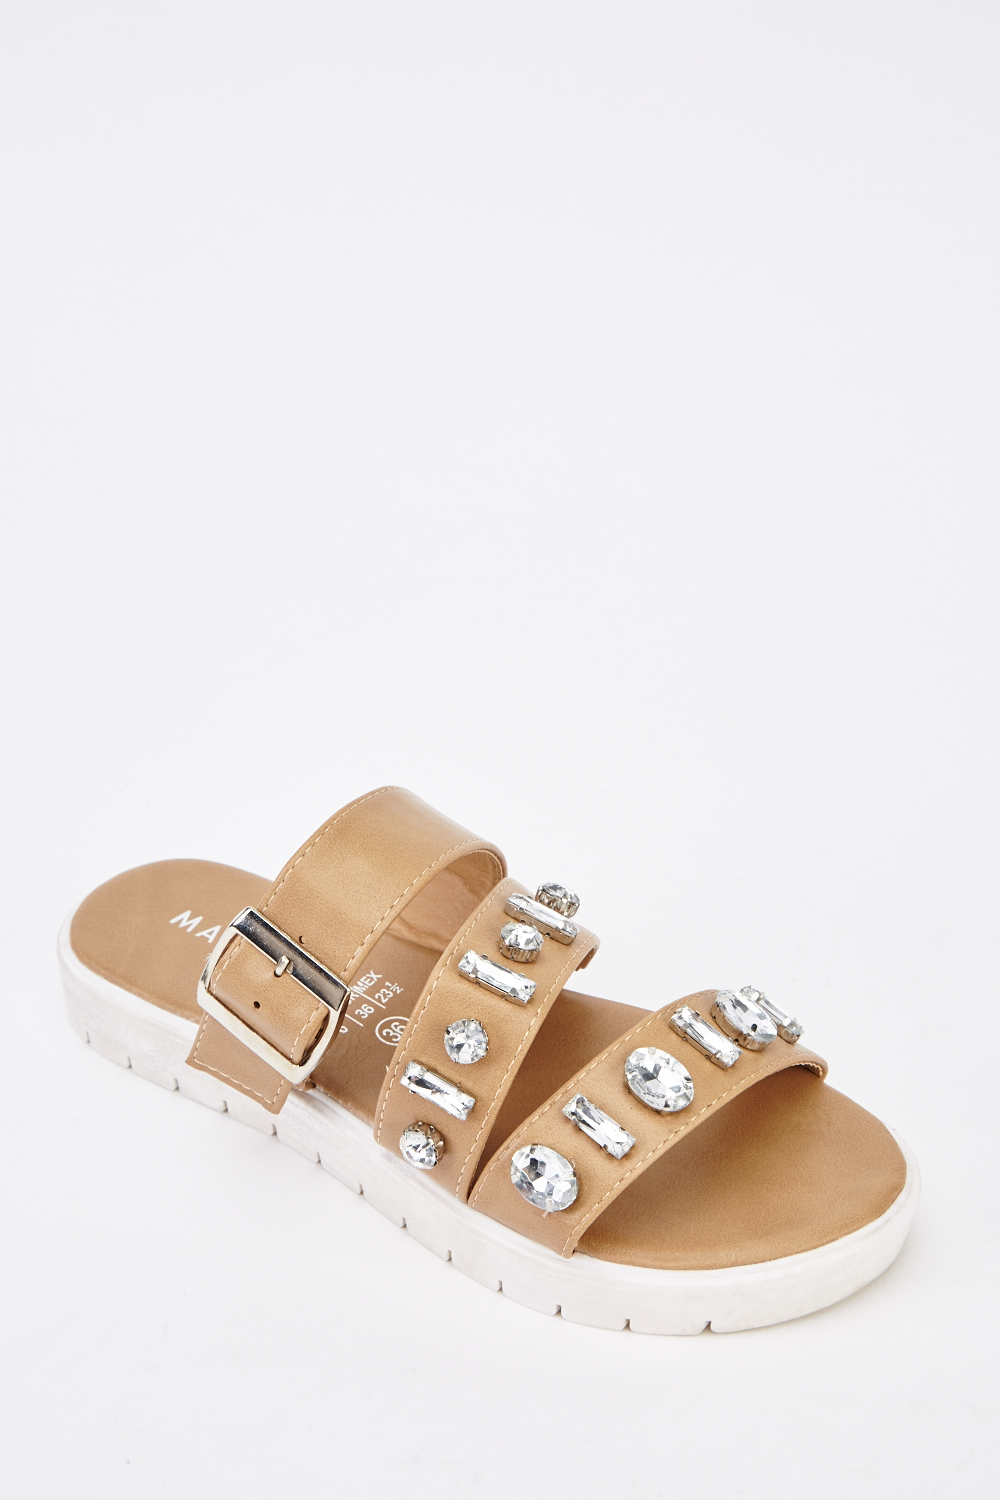 84e032c8fe4 Embellished Strappy Sandals - Just £5